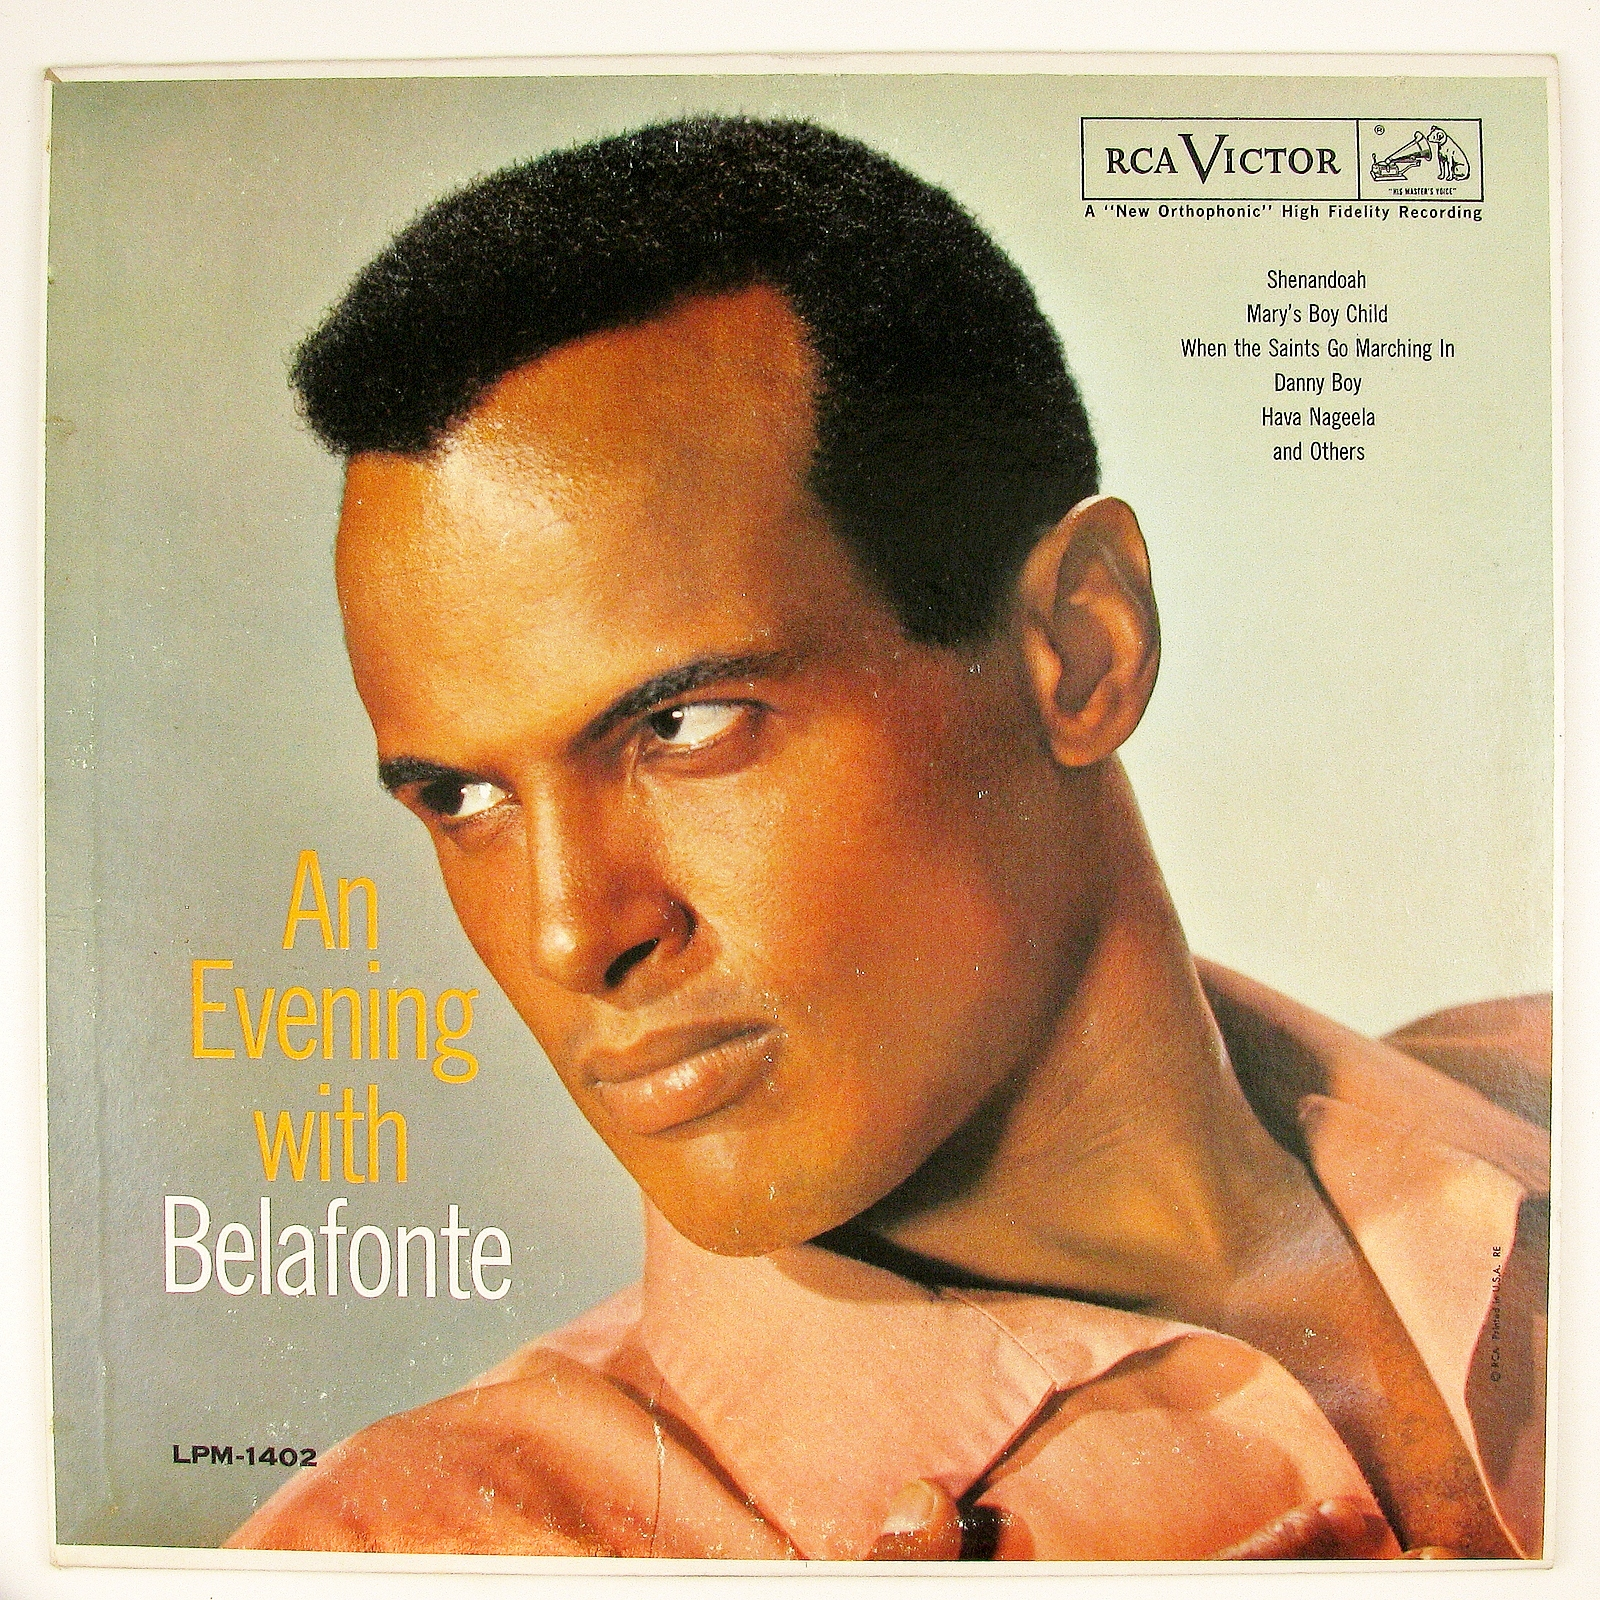 Harry Belafonte's (1927-present) dynamic concert performances and popular albums mainstreamed folk music from multiple countries including Trinidad, Israel and Peru. He was also a successful stage, film and TV actor, and producer.